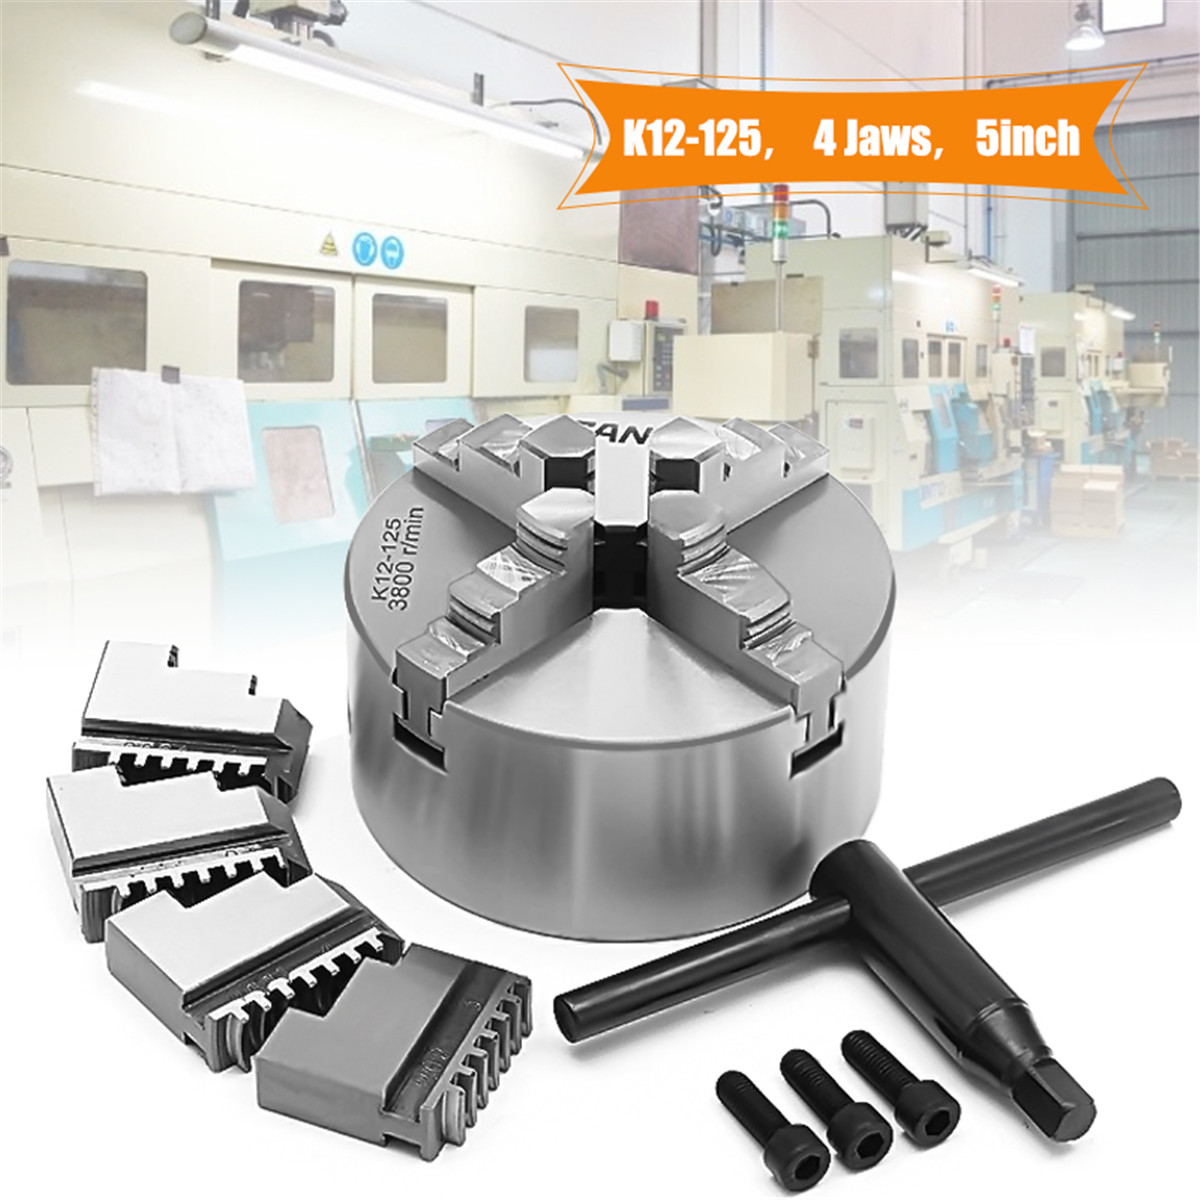 4 Jaw 5'' K12-125 Lathe Chuck Self Centering Hardened Steel CNC Milling 125mm for Drilling Milling Machine 6 jaw 125mm lathe chuck 5 self centering six jaw chuck m8 for cnc milling lathe machine k13 125